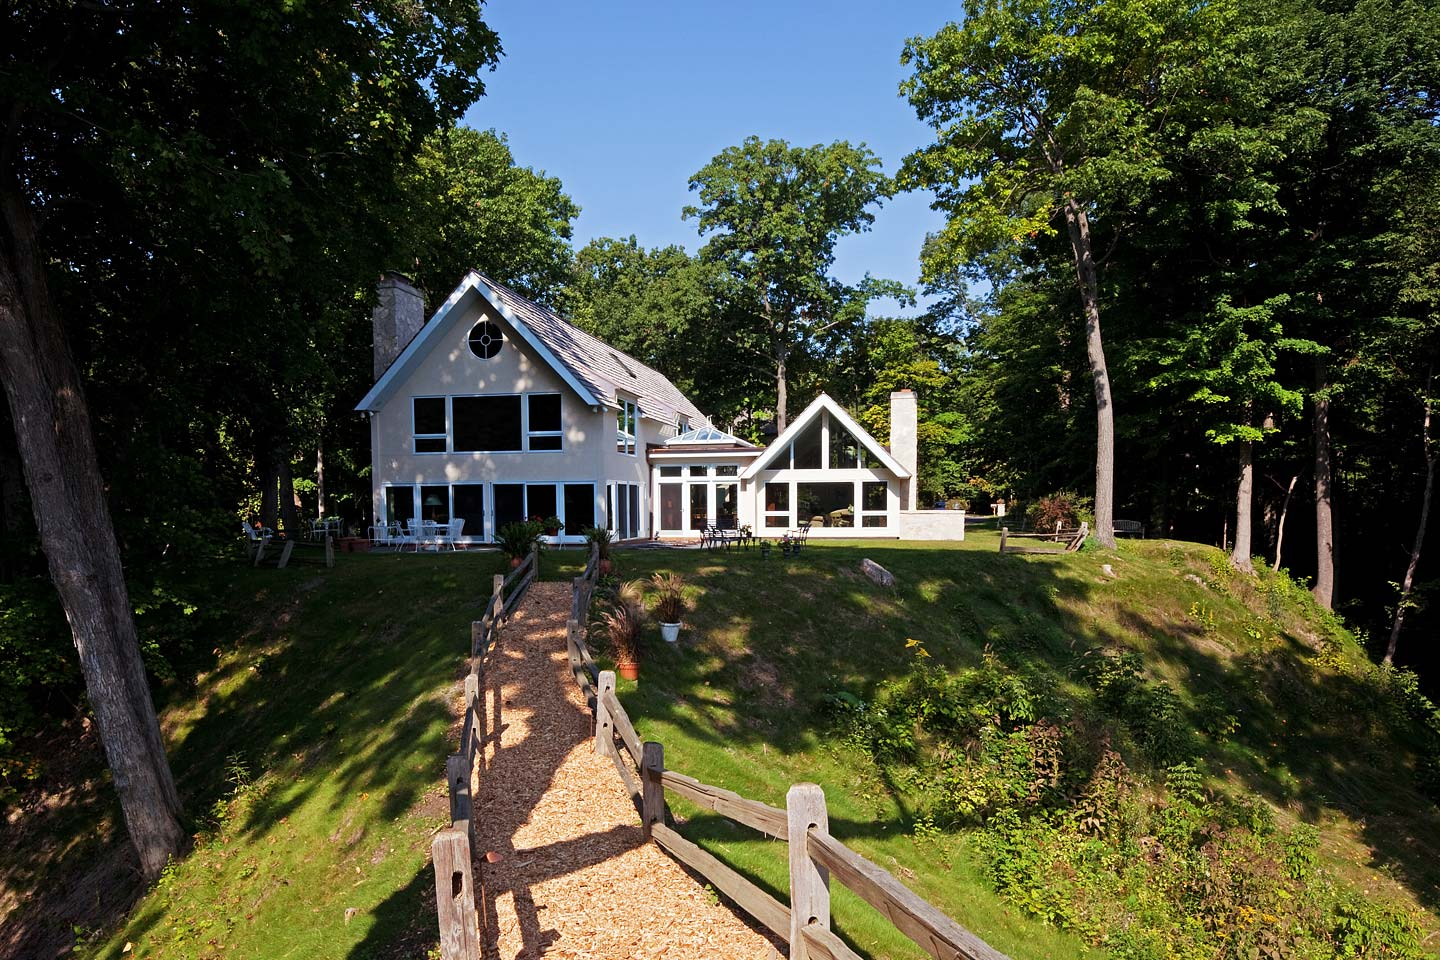 a rear exterior view of the home as seen when ascending a wood fenced path from the beach below, photographed by Jacob Rosenfeld